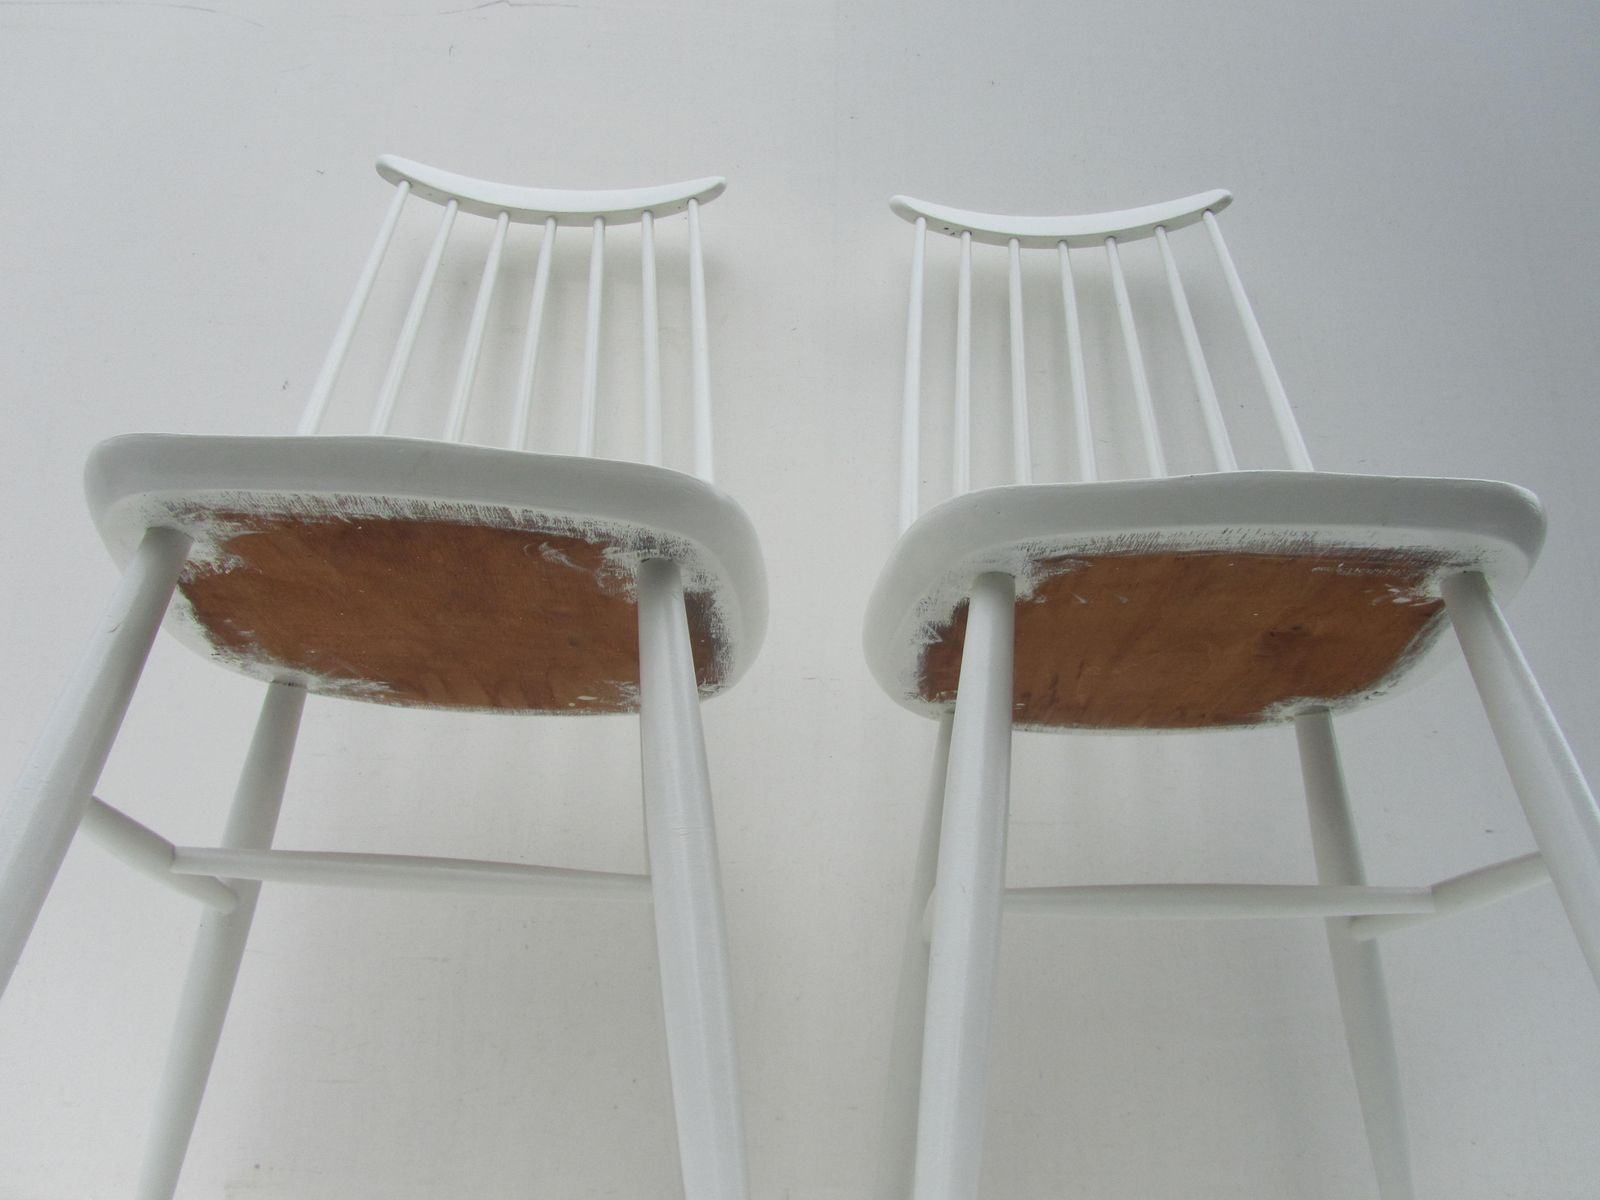 Spindle Back Dining Chairs 1960s Set of 2 for sale at Pamono